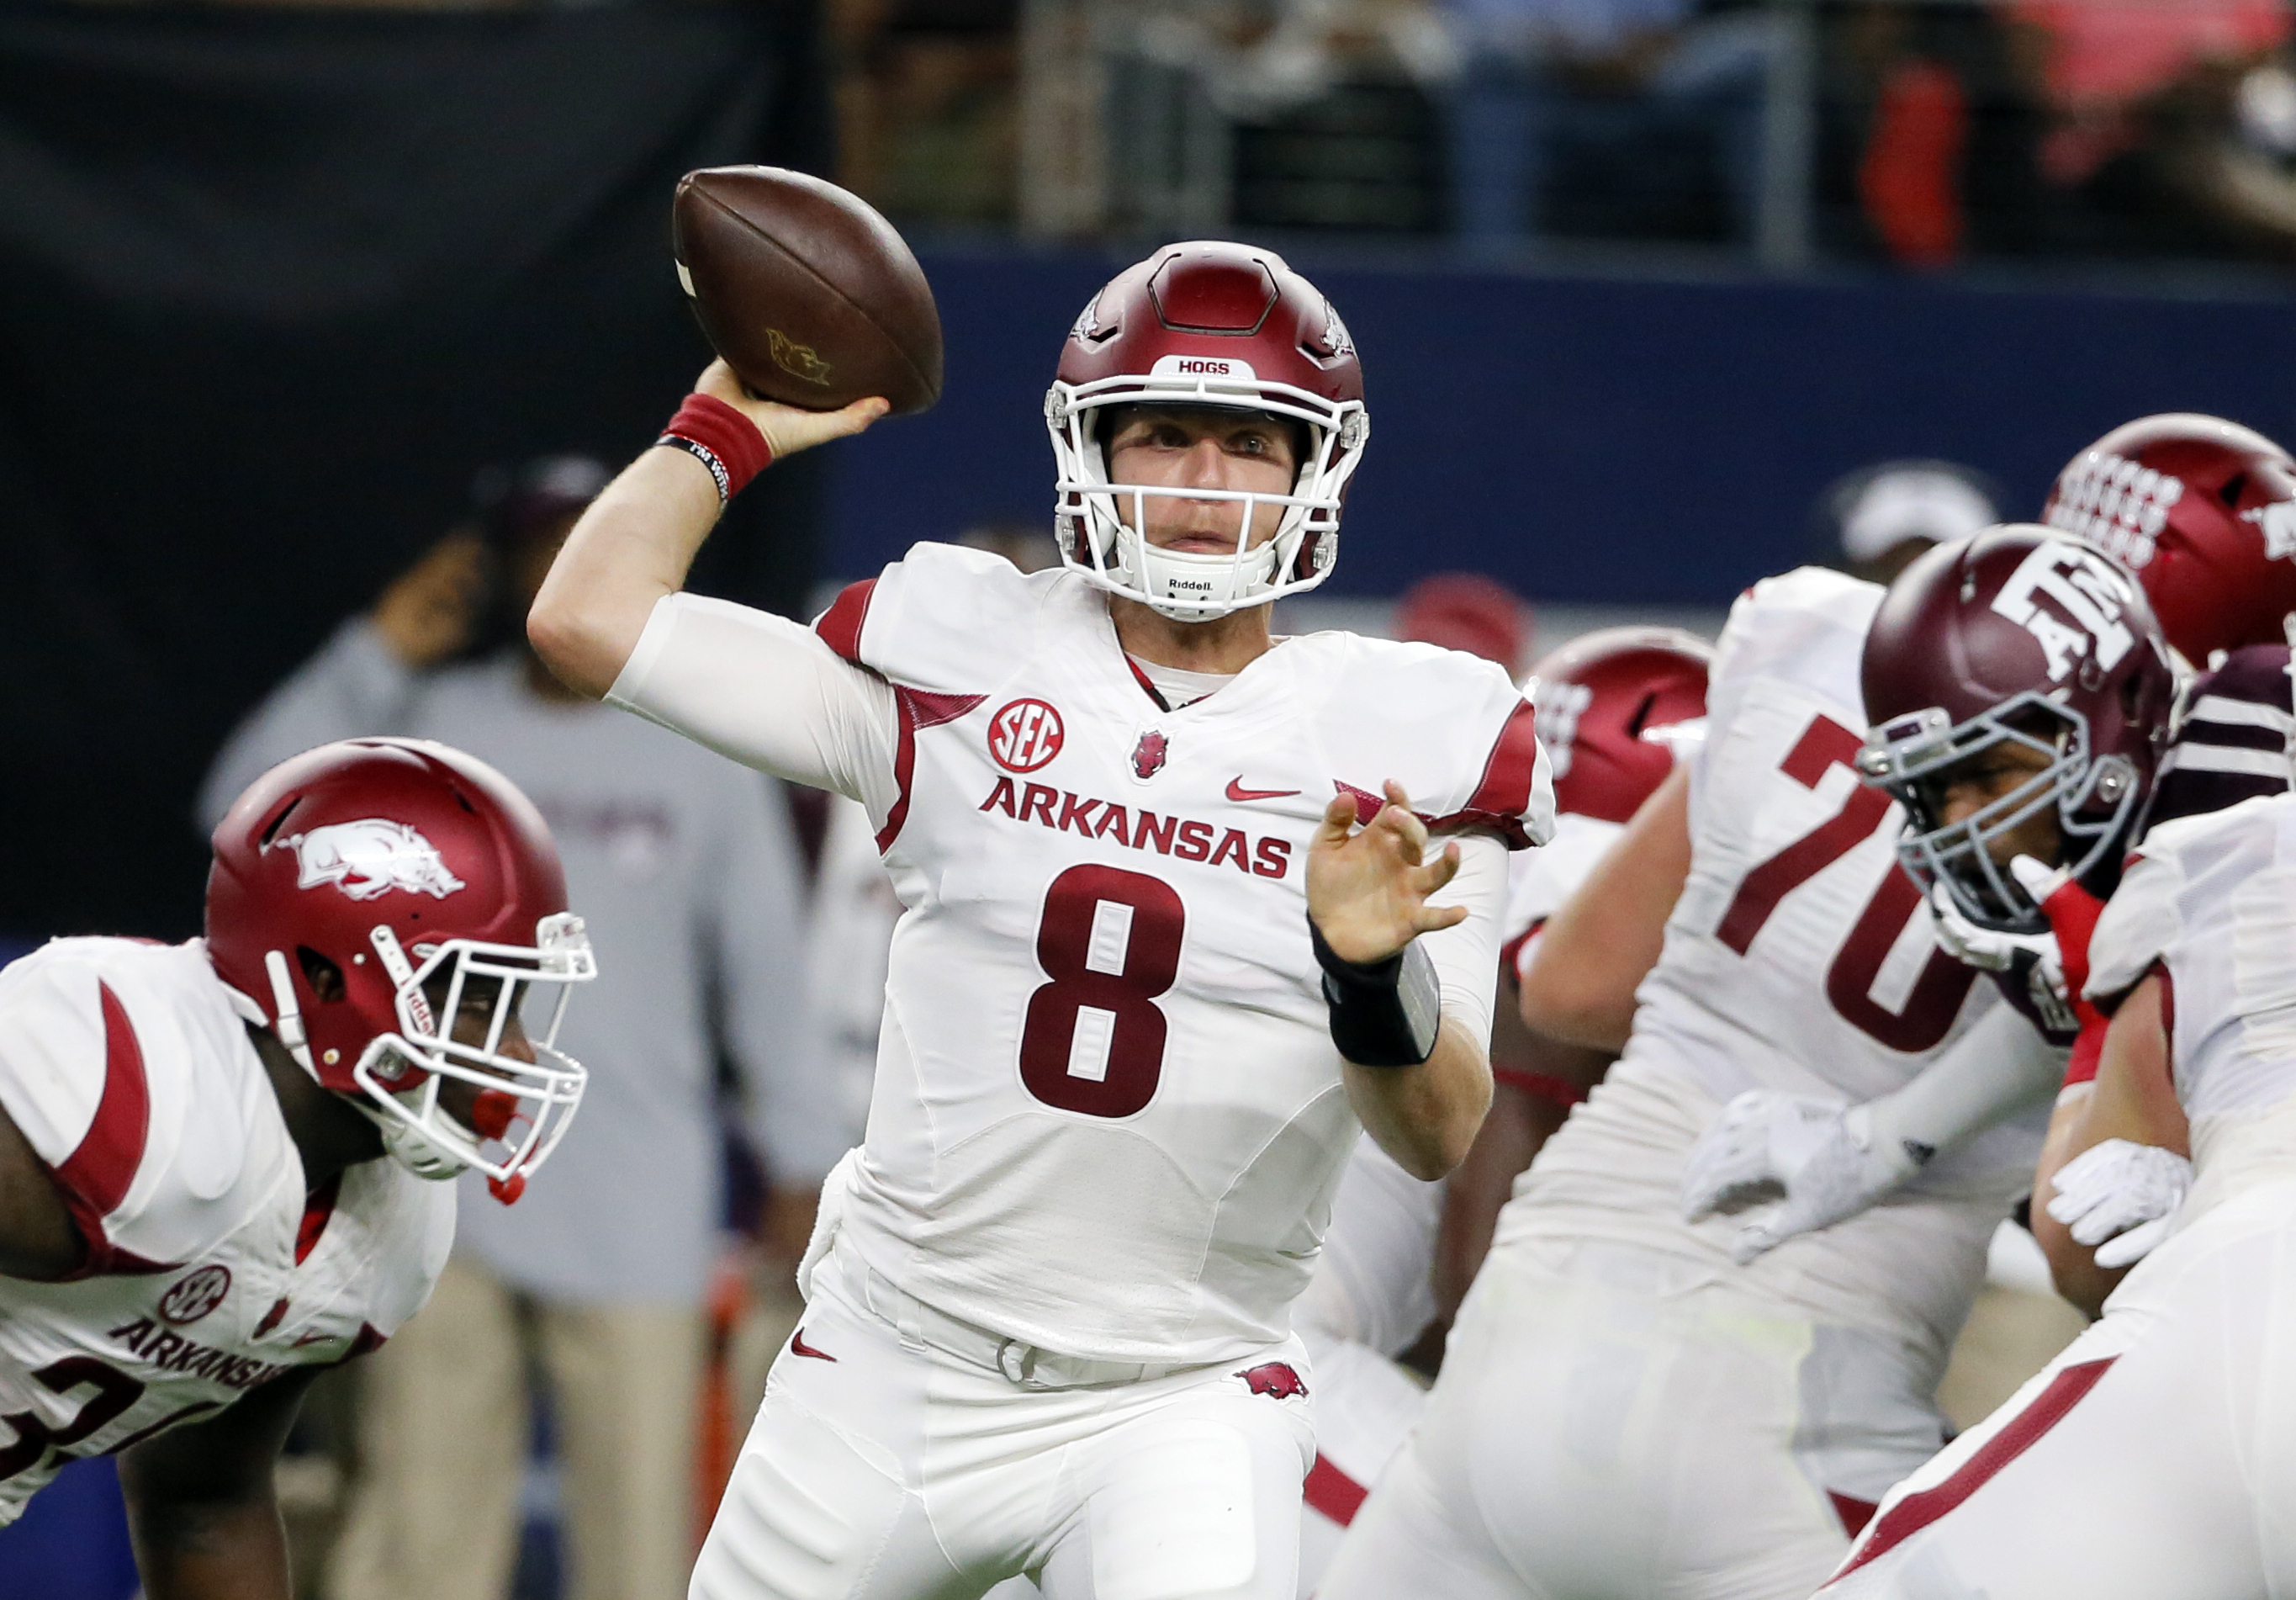 FILE- In this Sept. 24, 2016, file photo, Arkansas quarterback Austin Allen (8) throws a pass during the first half of an NCAA college football game against Texas A&M in Arlington, Texas. Allen has quickly established himself as one of the top quarterback